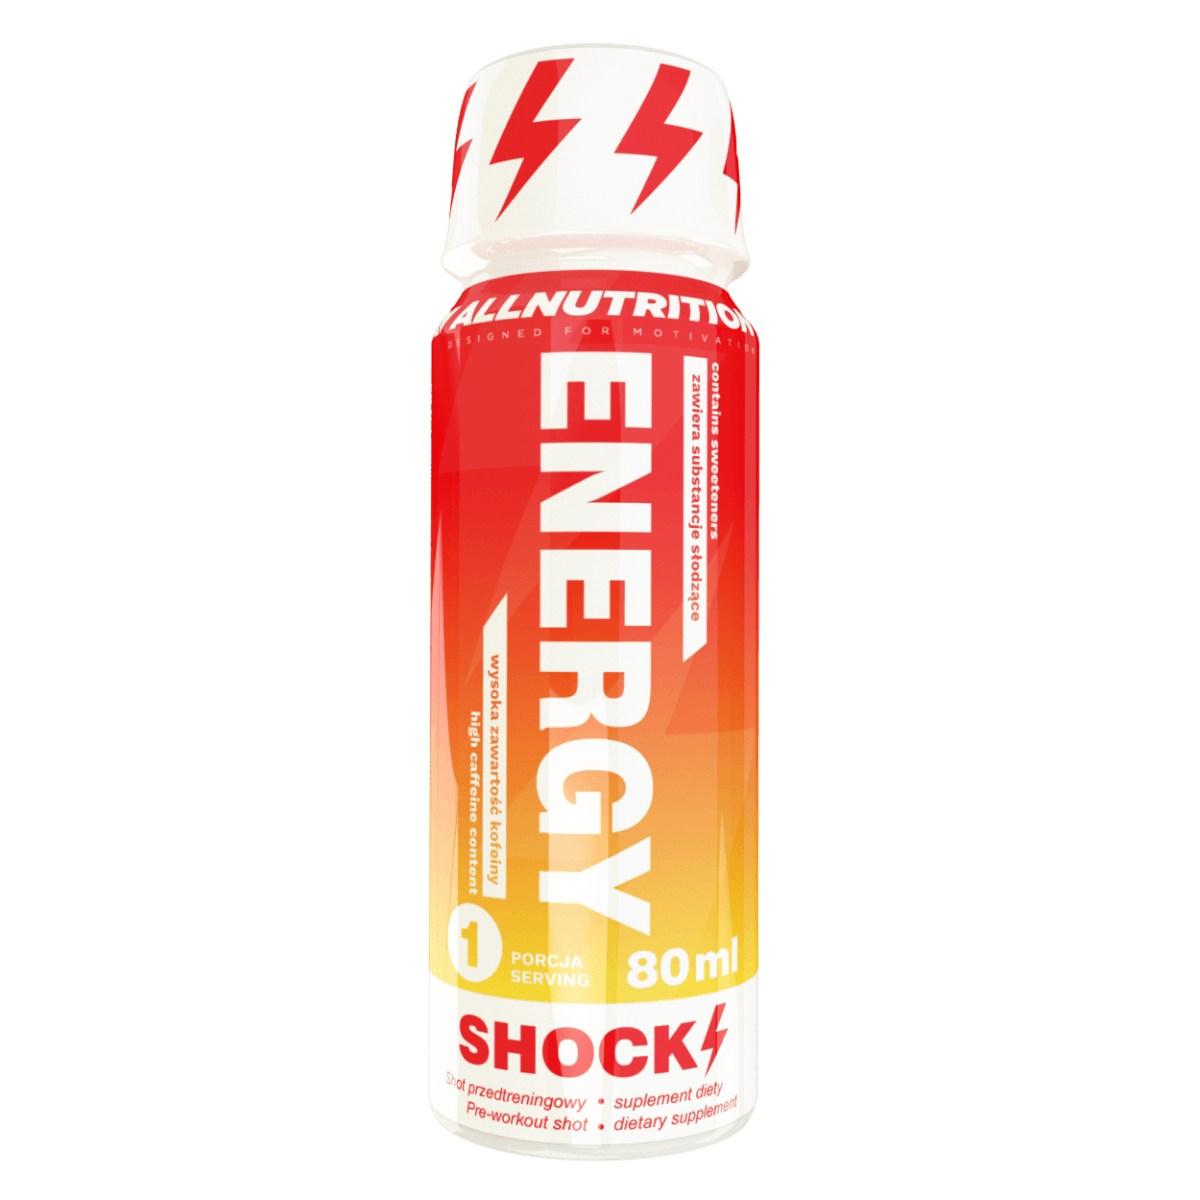 All Nutrition Predtréningový stimulant Energy Shock Shot 80 ml